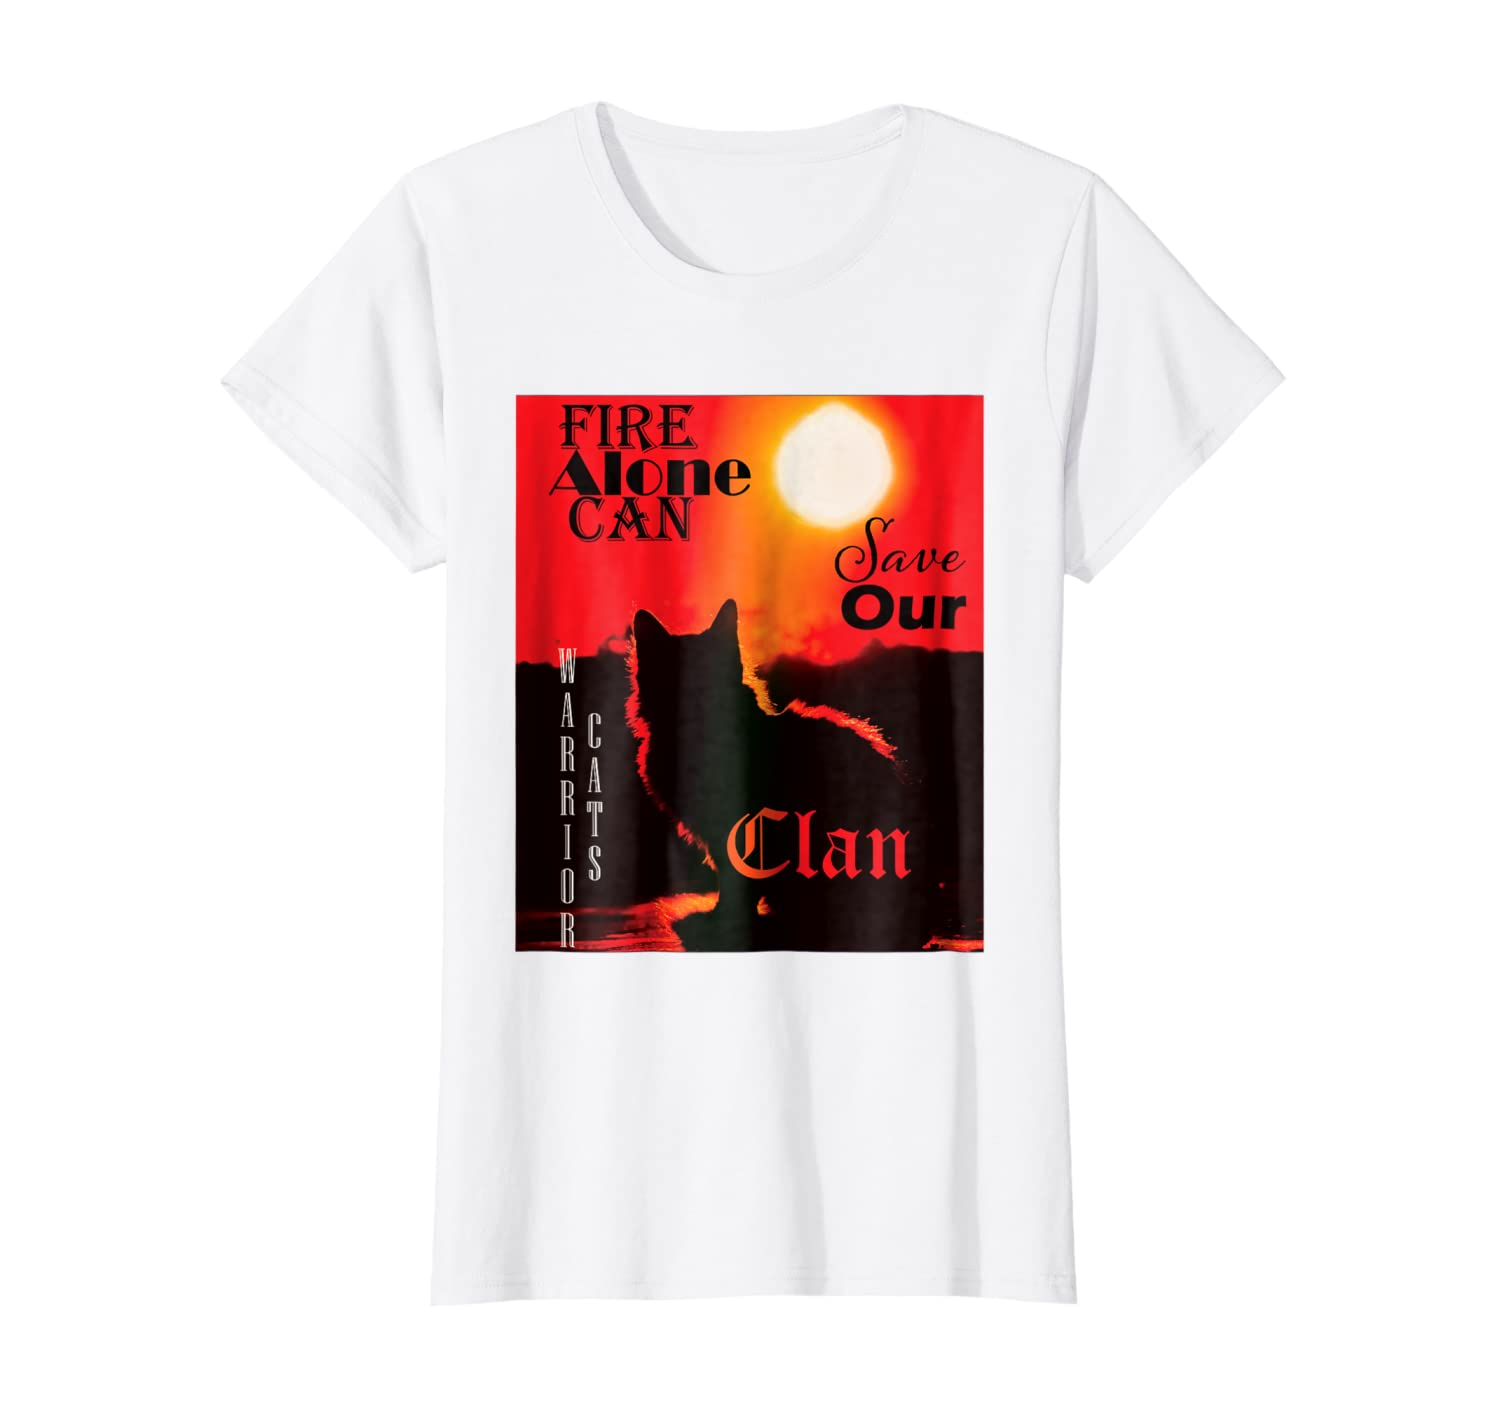 Amazon com: Fire Alone Can Save Our Clan, Warrior Cats T-Shirt: Clothing